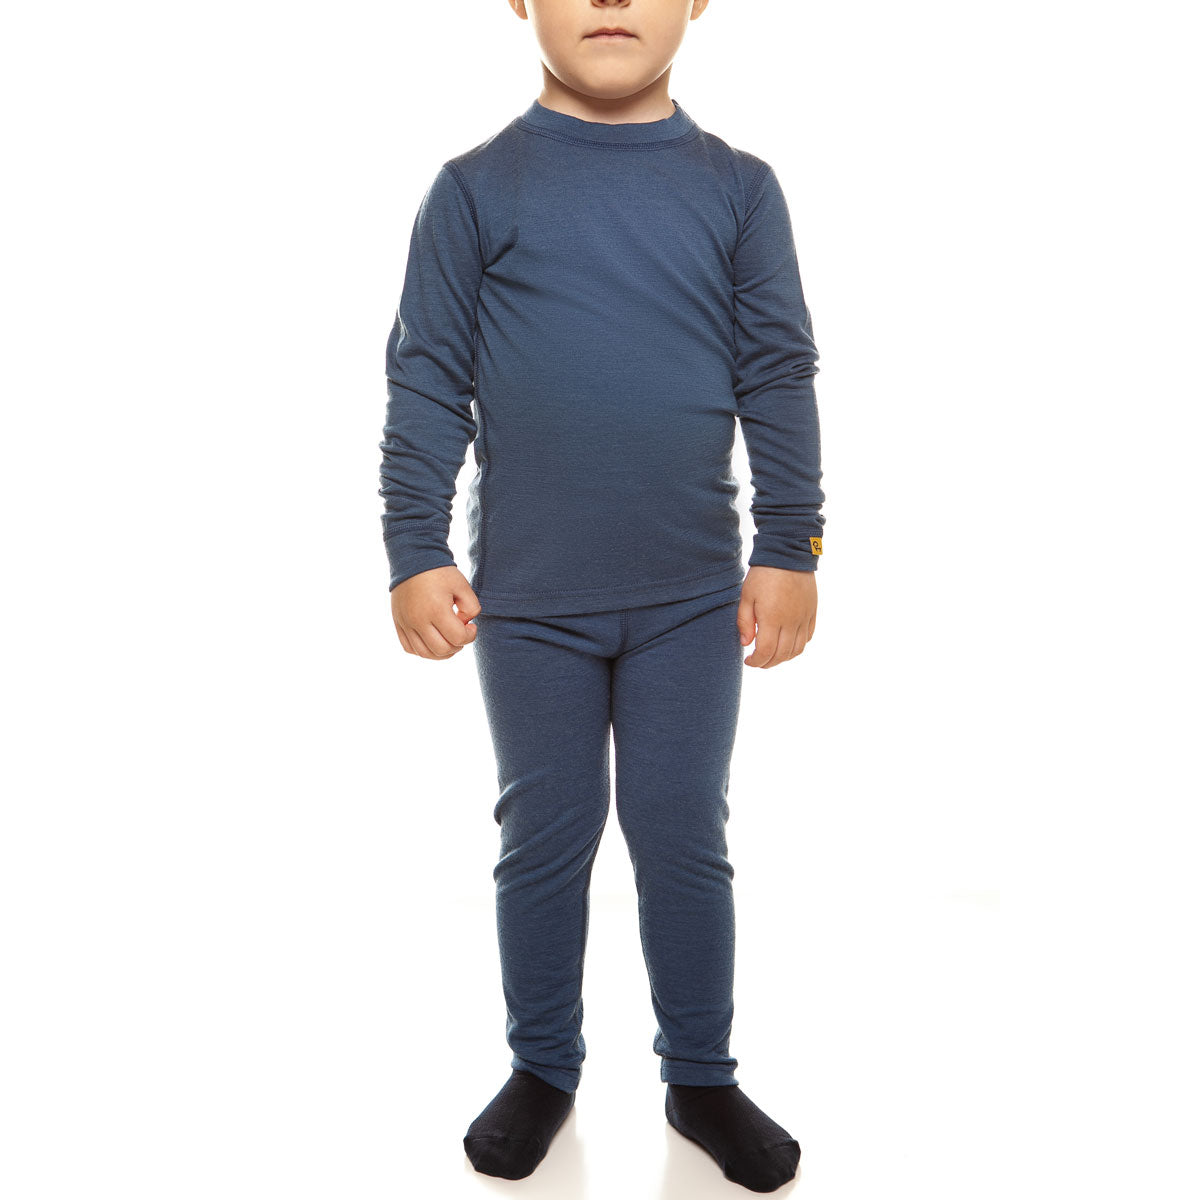 menique Kids' Merino 160 Long Sleeve Set Denim Color